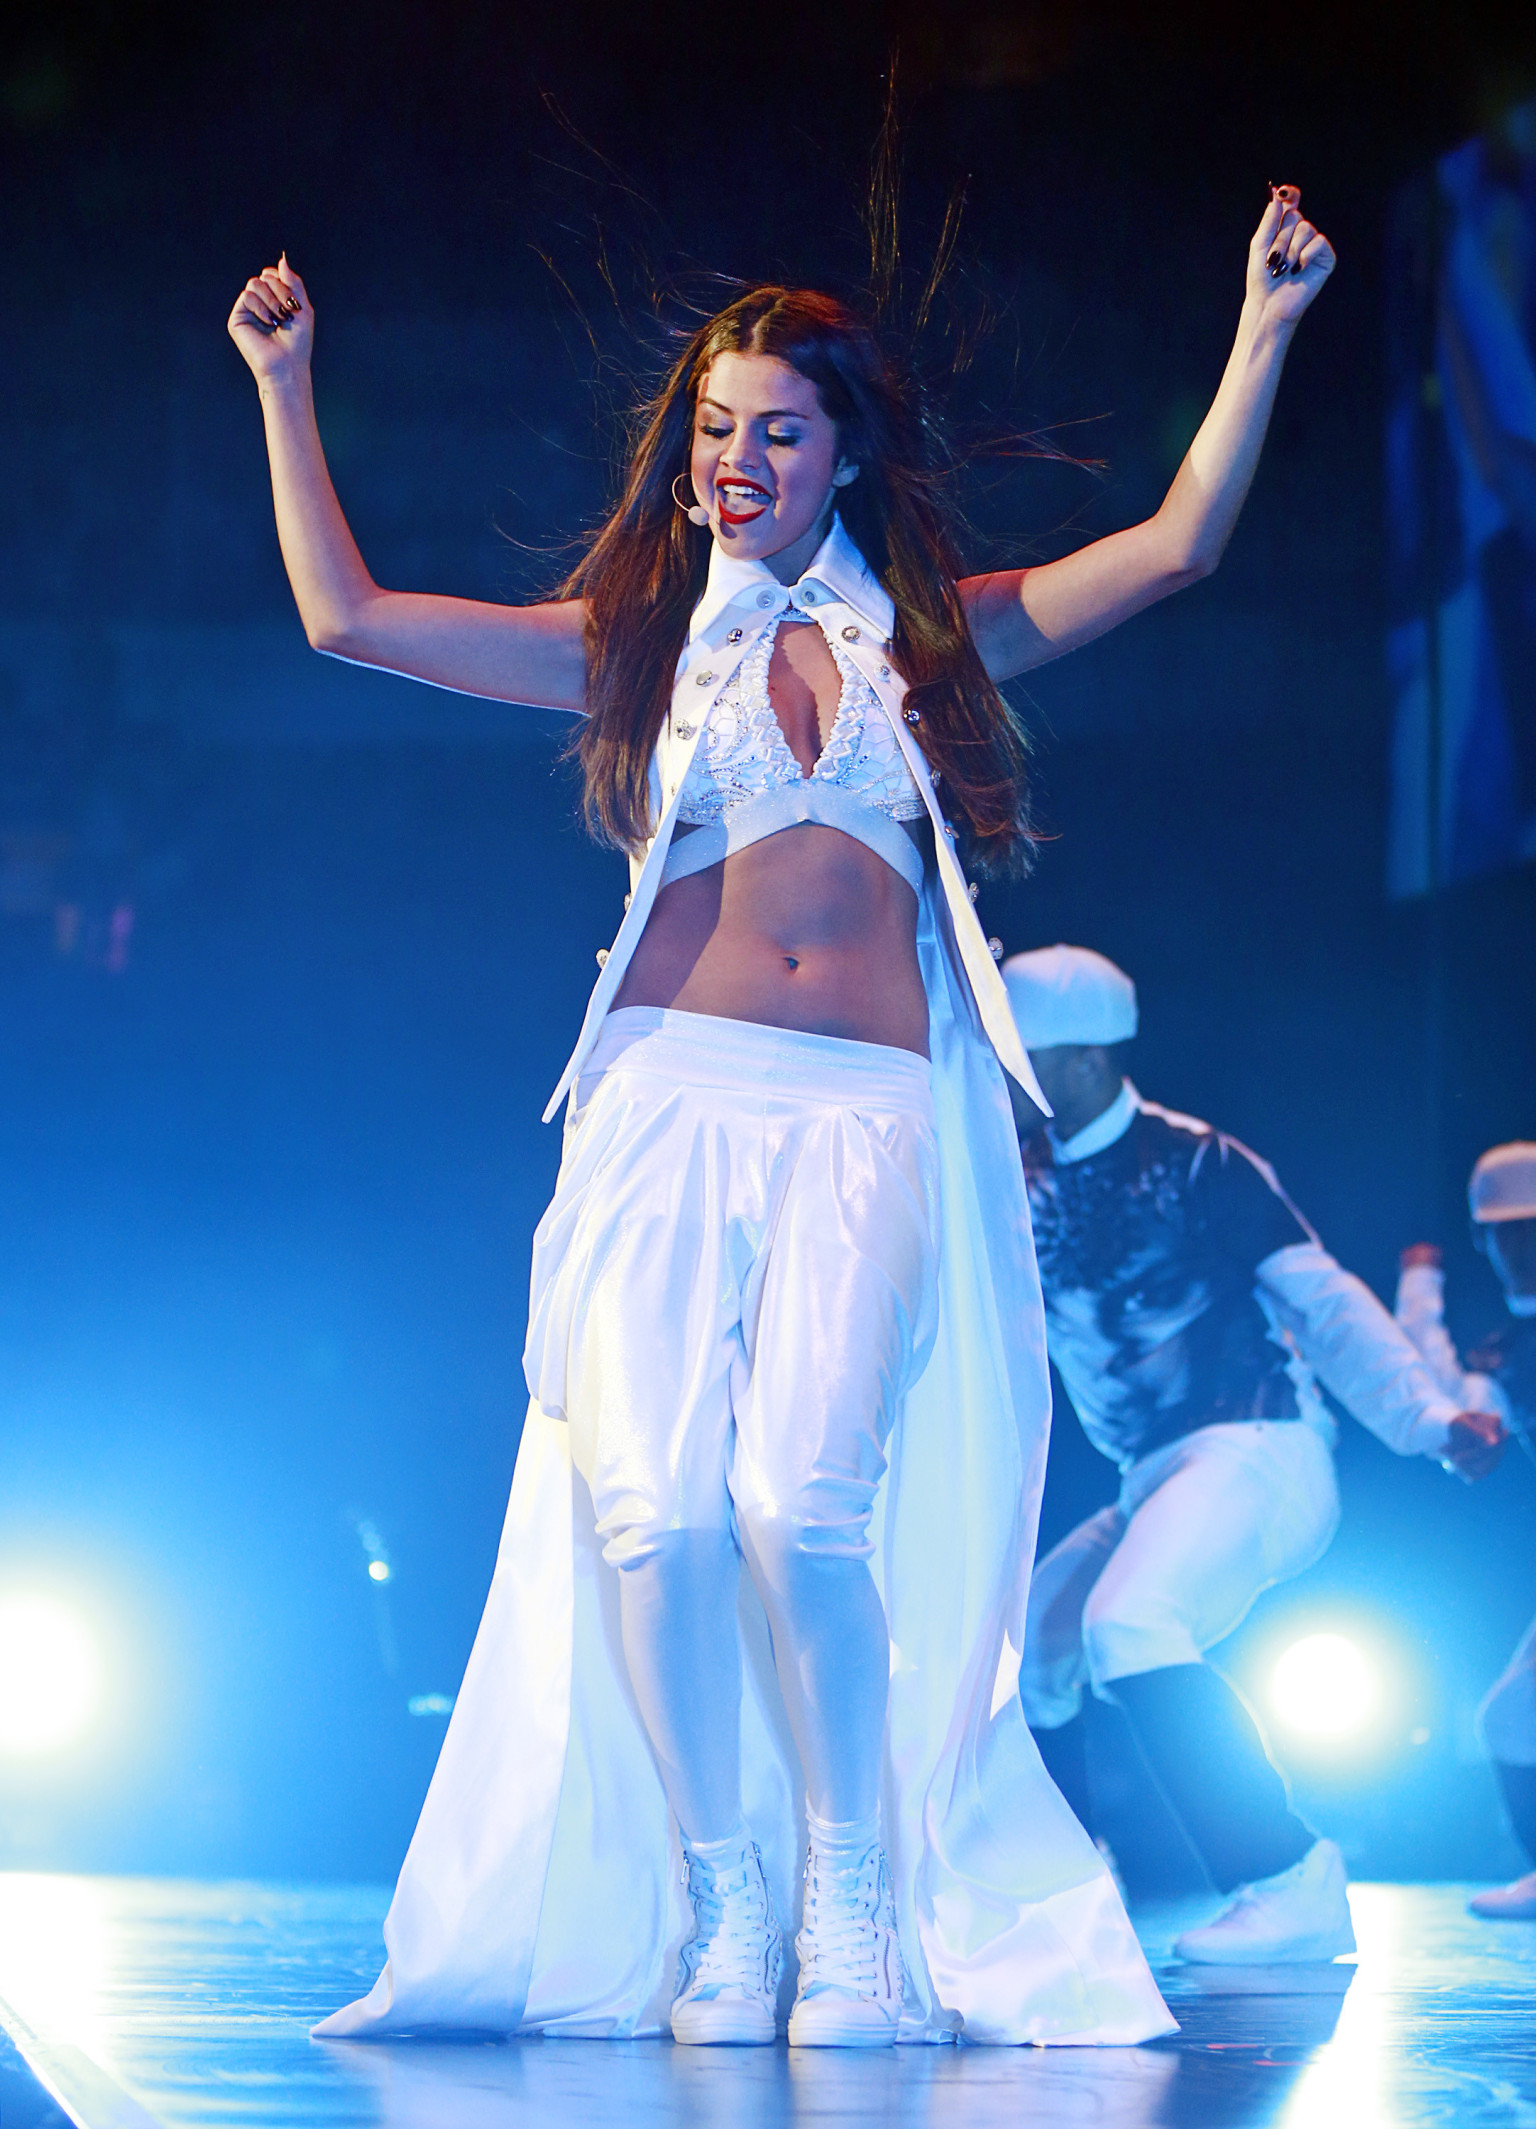 Selena gomez shows her abs in halter crop top for opening night of selena gomez shows her abs in halter crop top for opening night of stars dance tour huffpost voltagebd Image collections